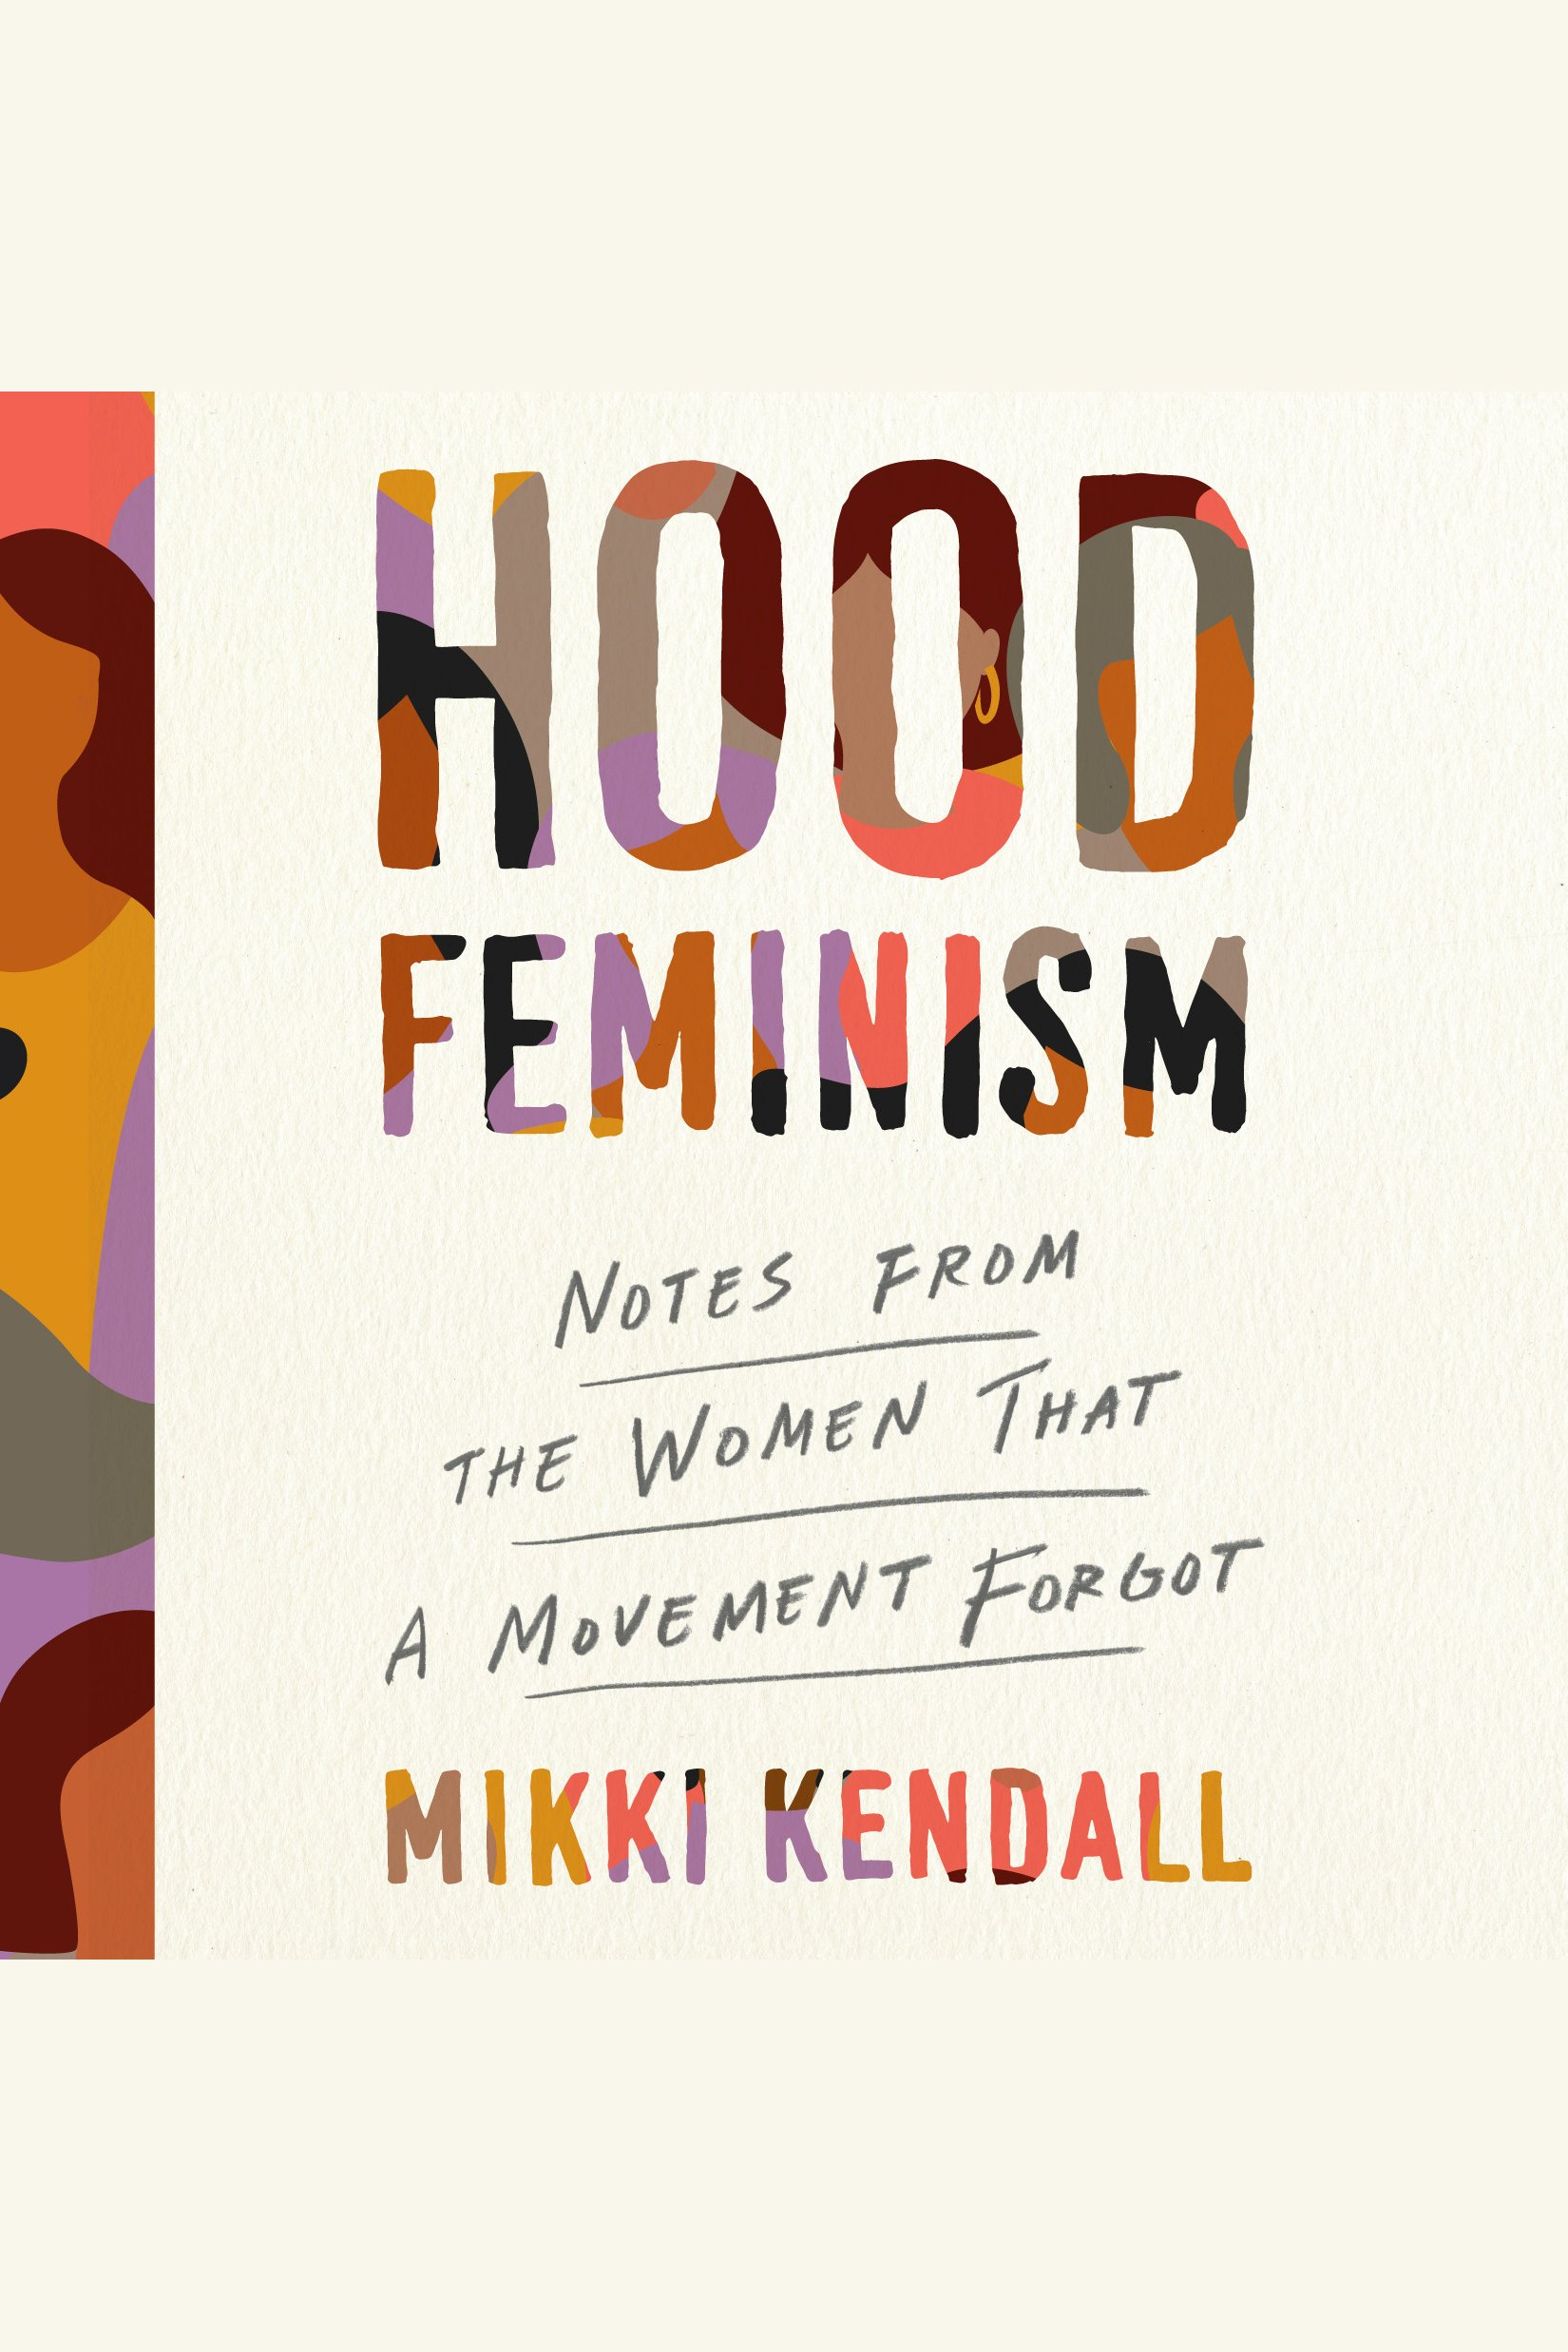 Hood Feminism Notes from the Women that a Movement Forgot